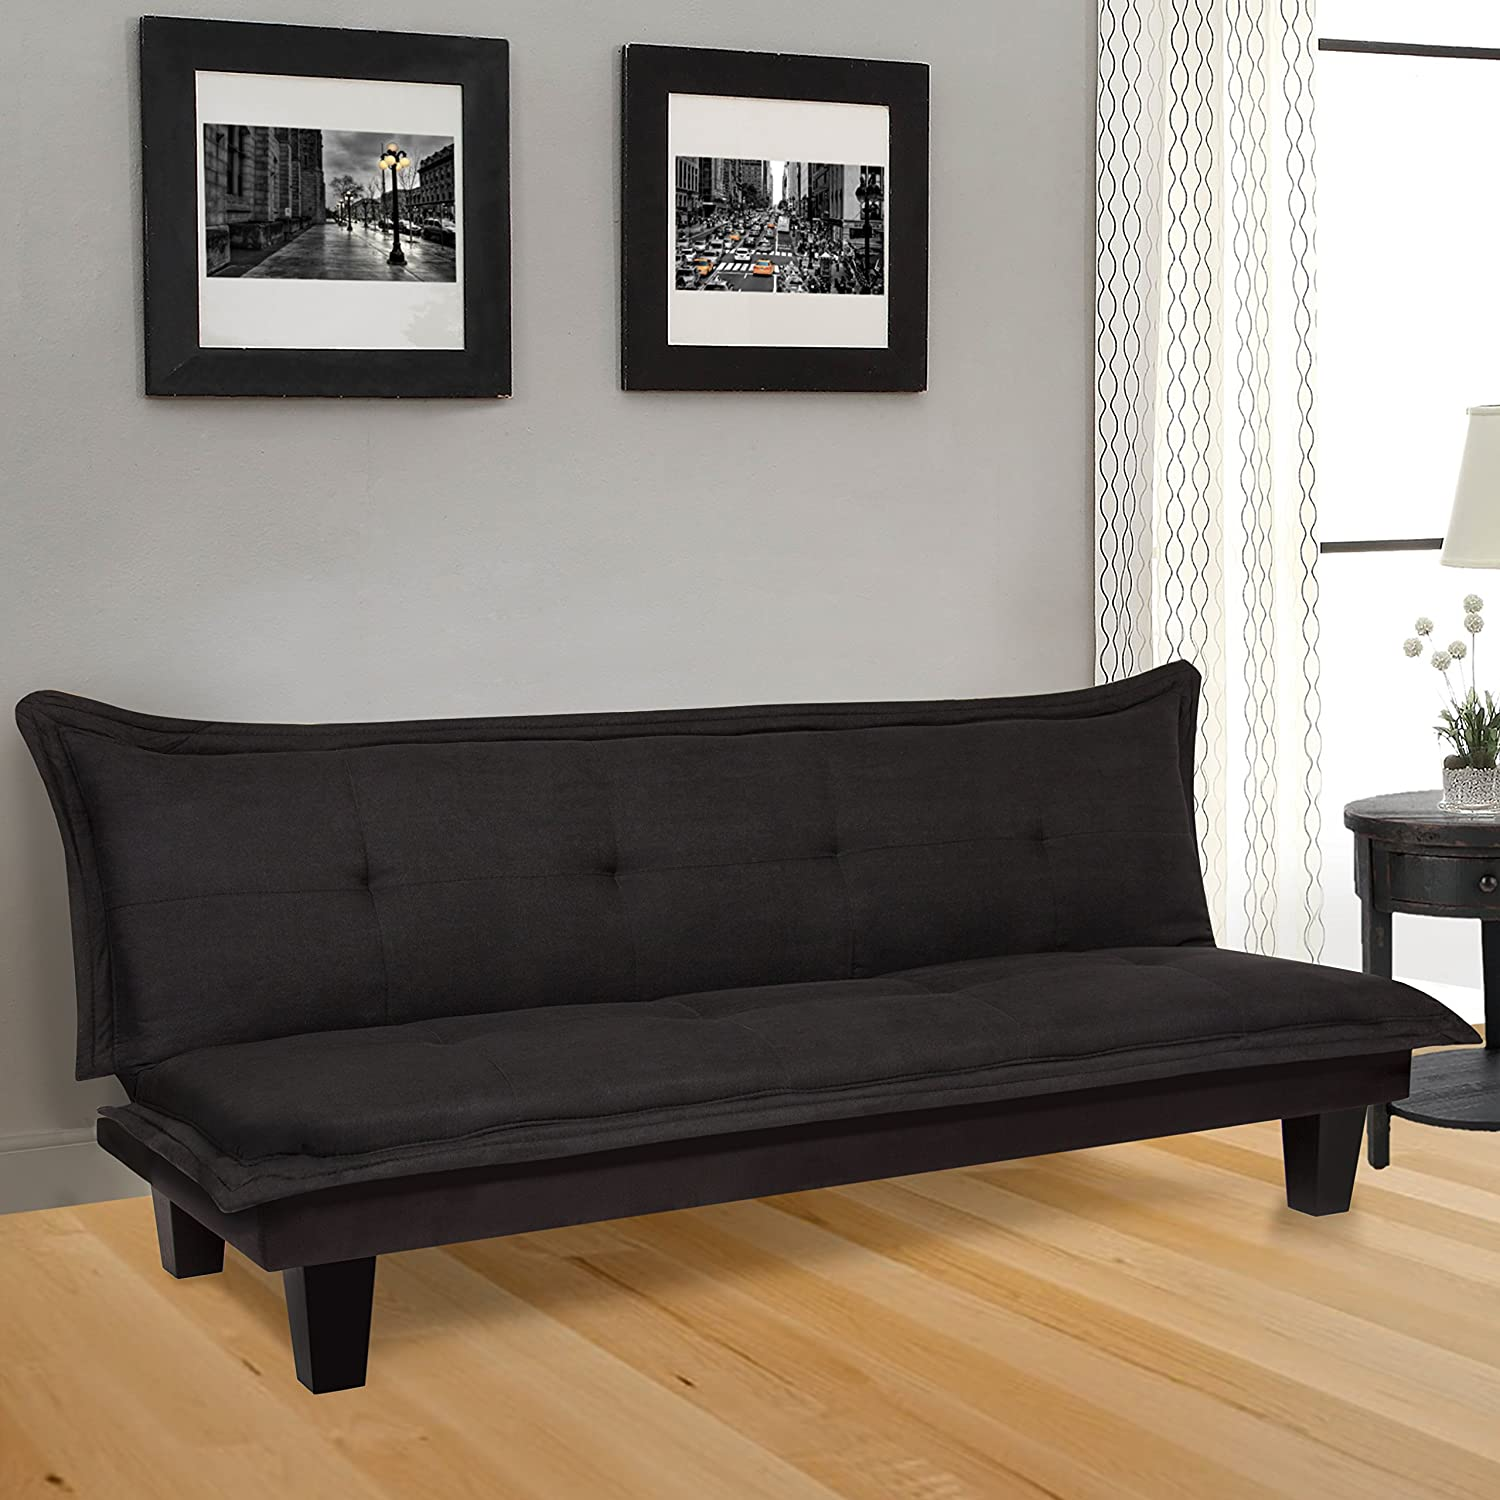 Futon sofas futon sofas with futon sofas cheap futon for Affordable furniture victorville ca